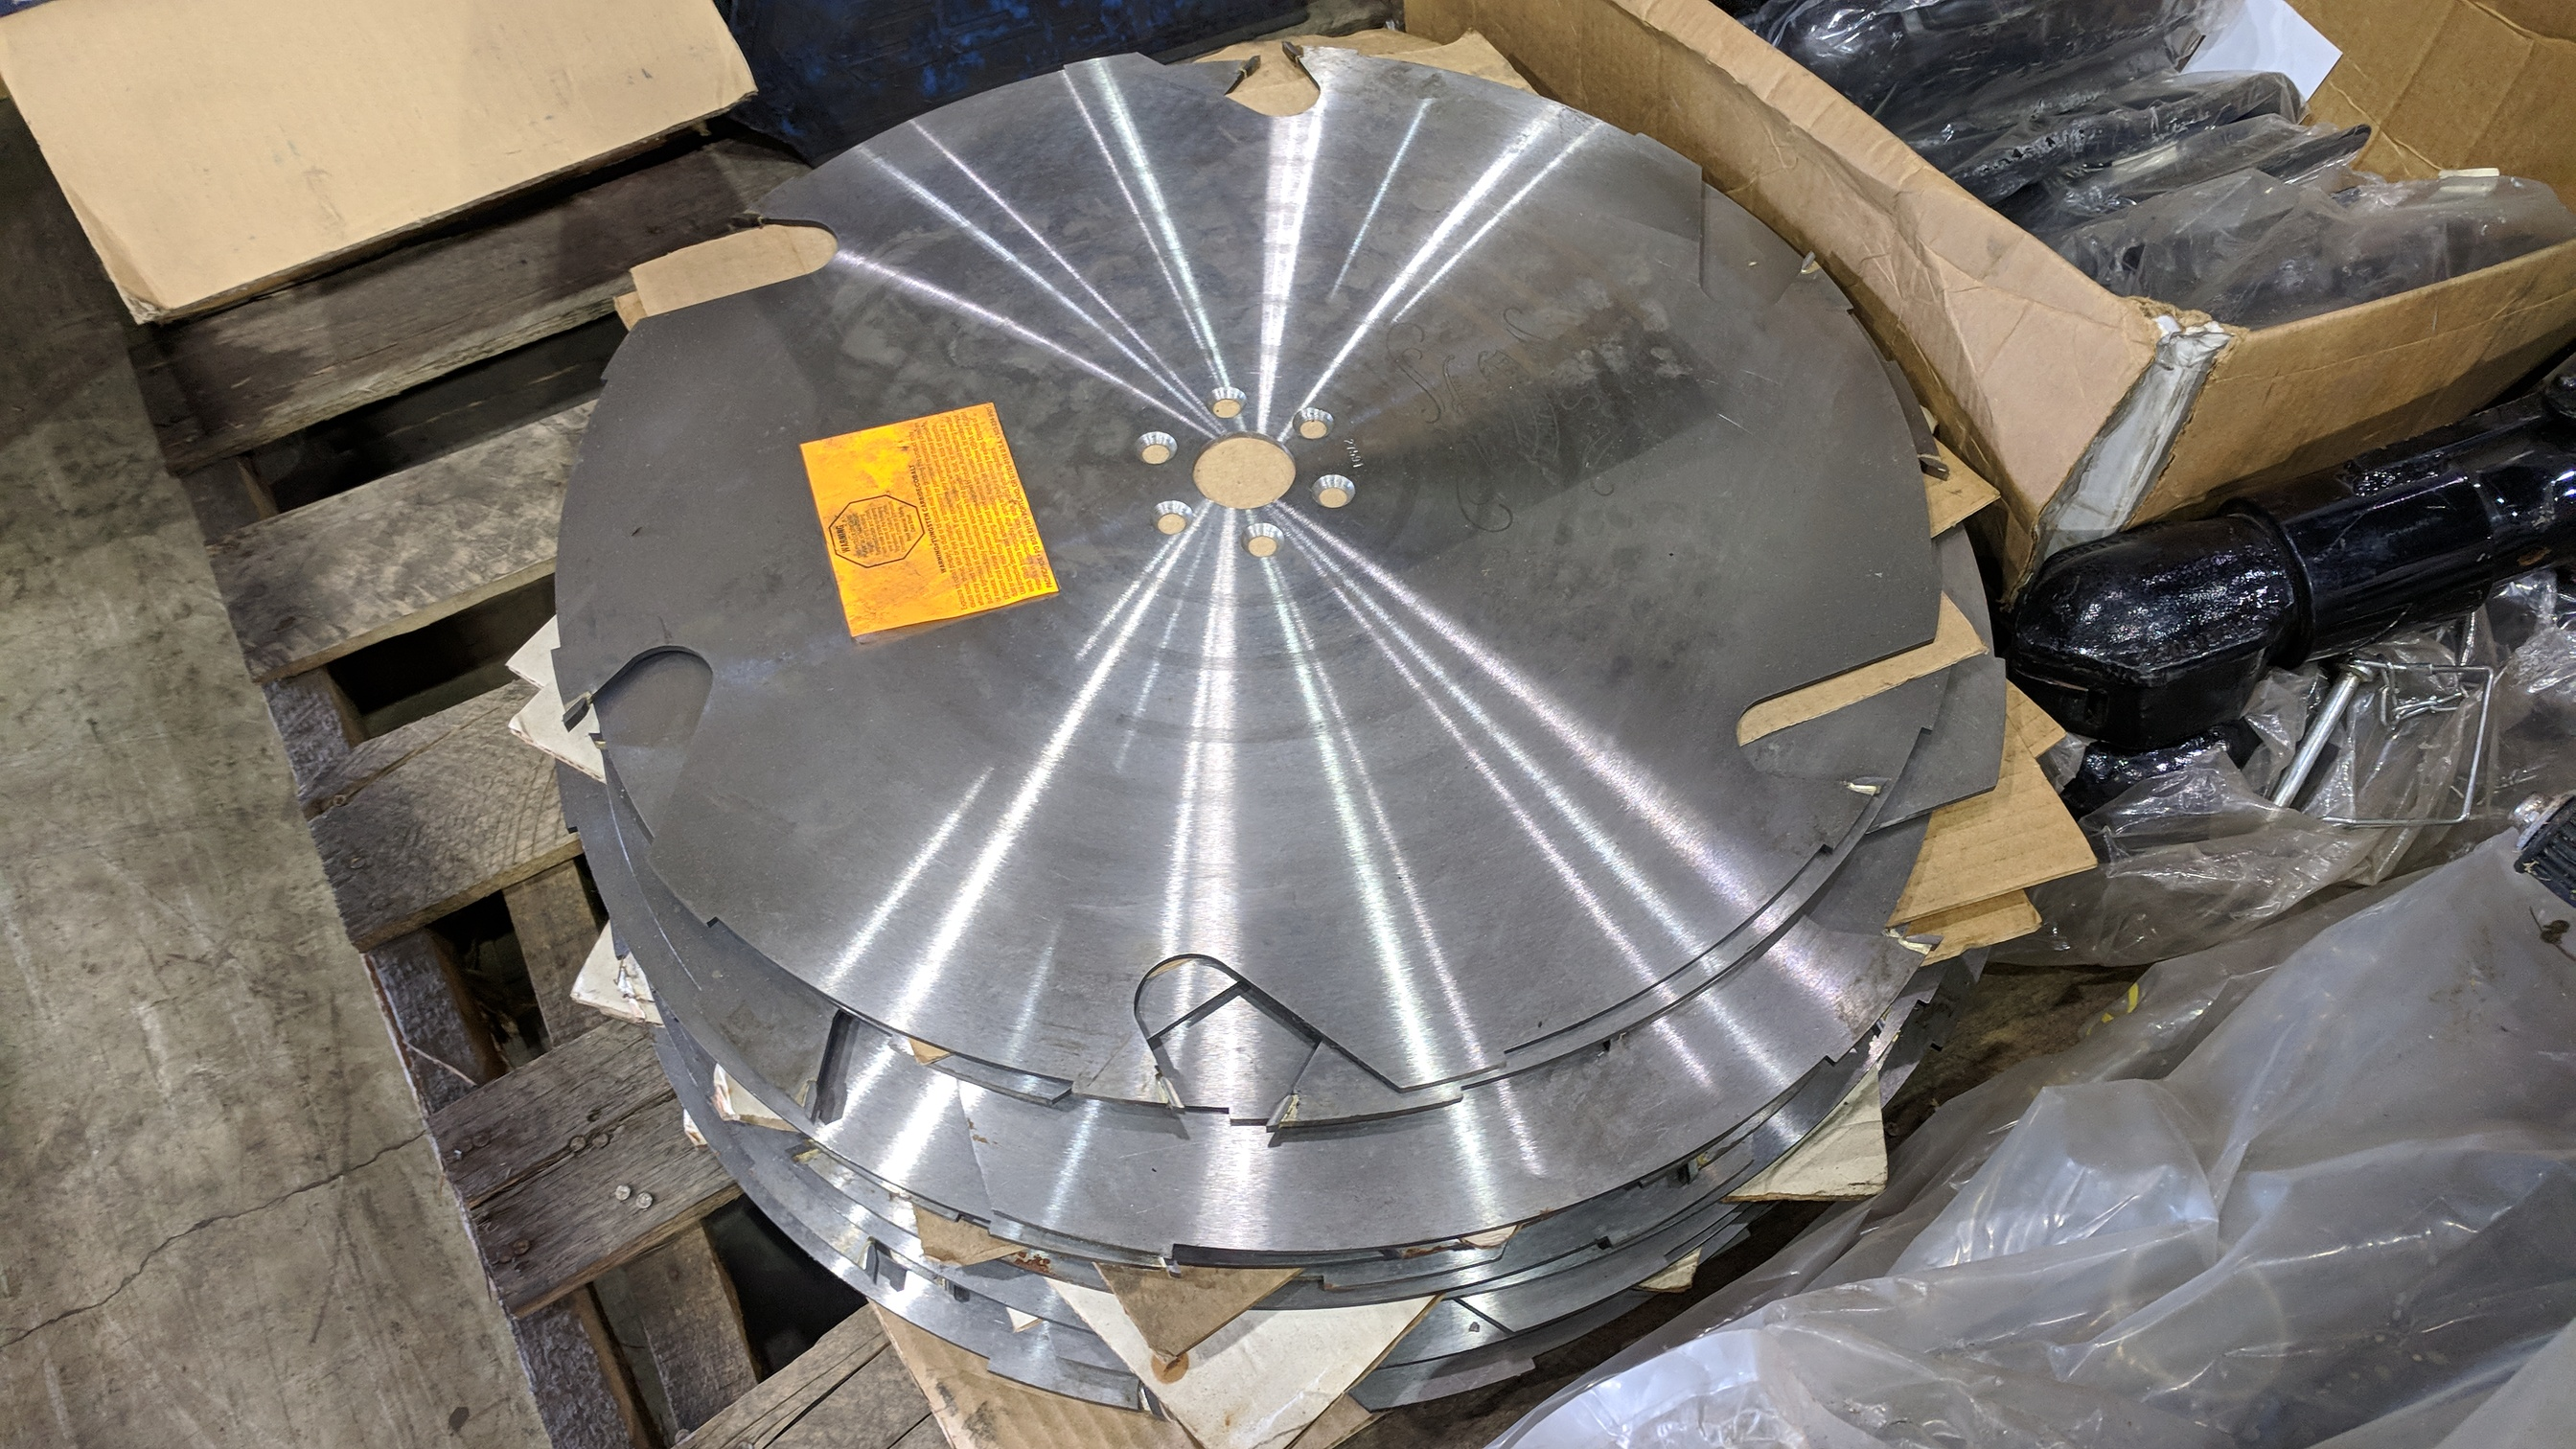 LOT/ SAW BLADES, MANUAL JACKS AND TRAILER HITCHES - Image 3 of 4